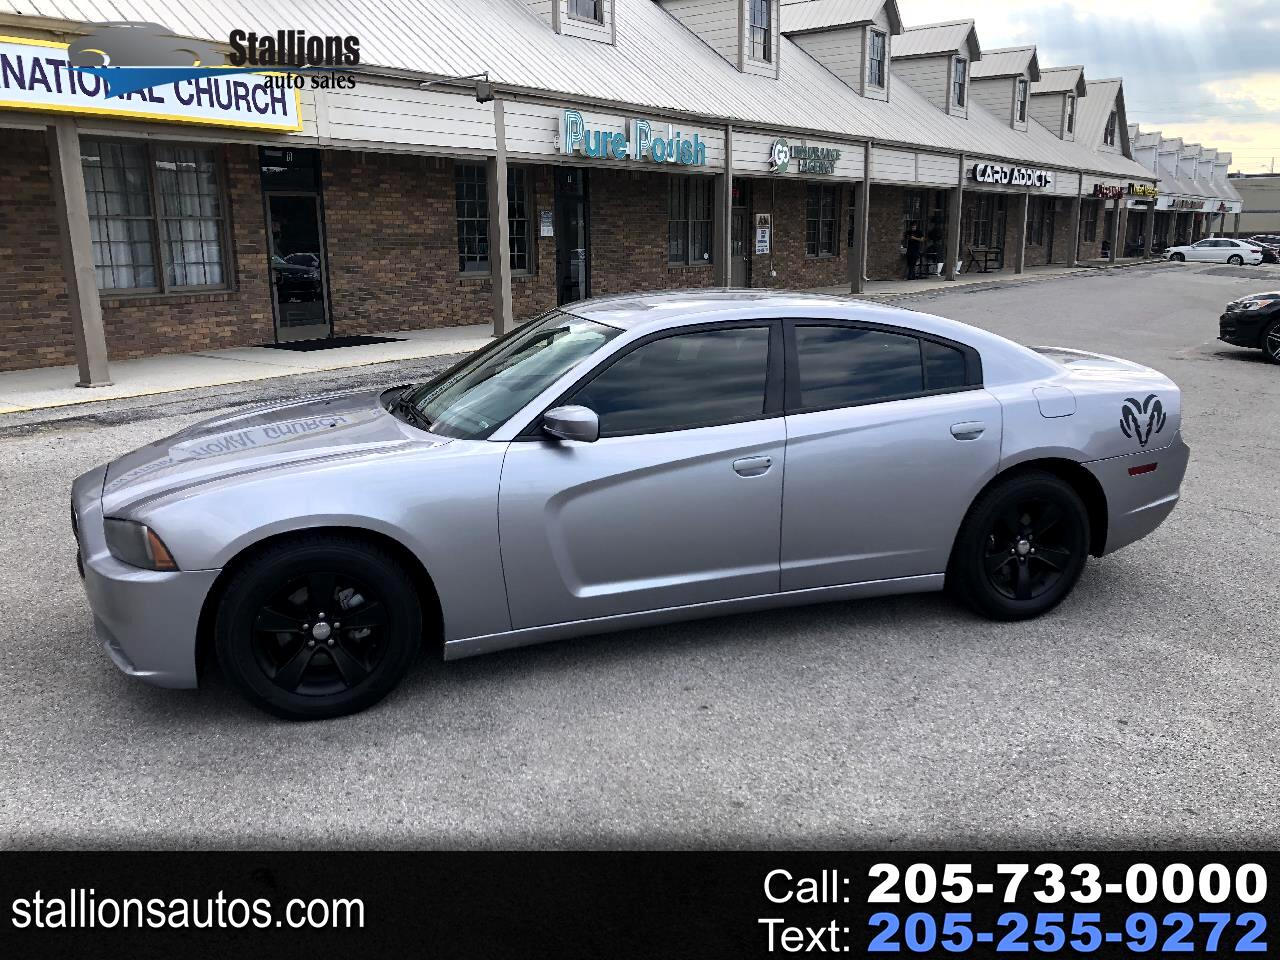 Buy Here Pay Here Birmingham Al >> Buy Here Pay Here 2013 Dodge Charger For Sale In Birmingham